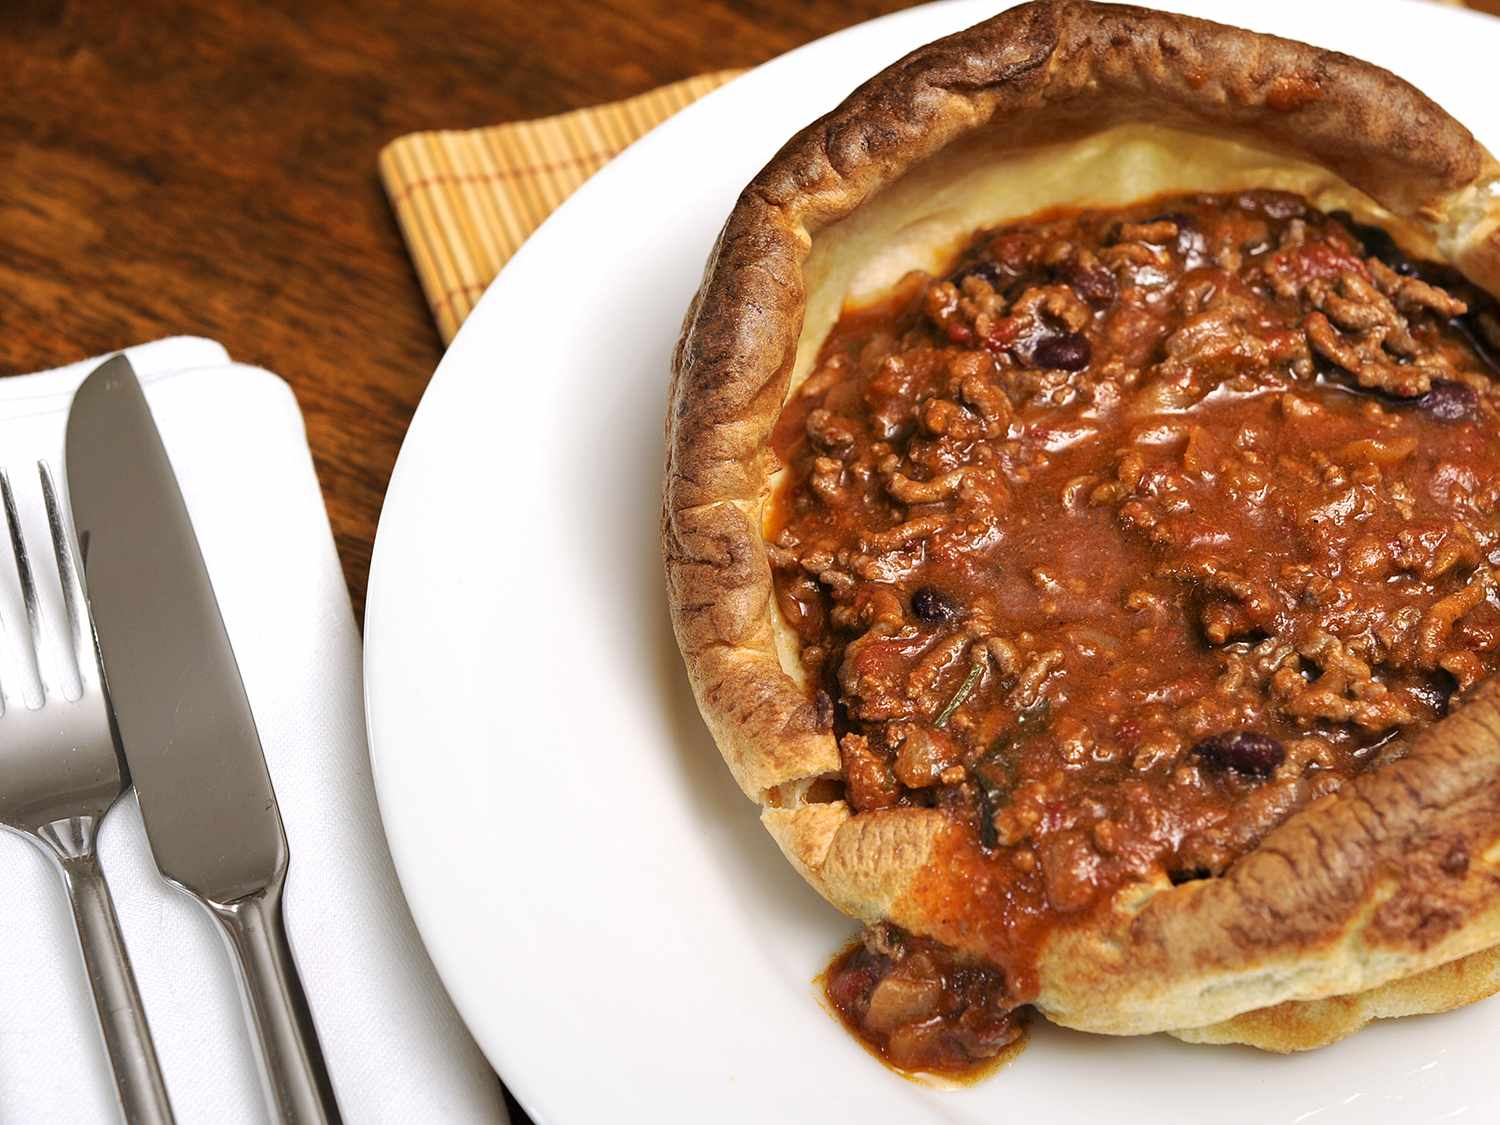 Chili Filled Yorkshire Pudding